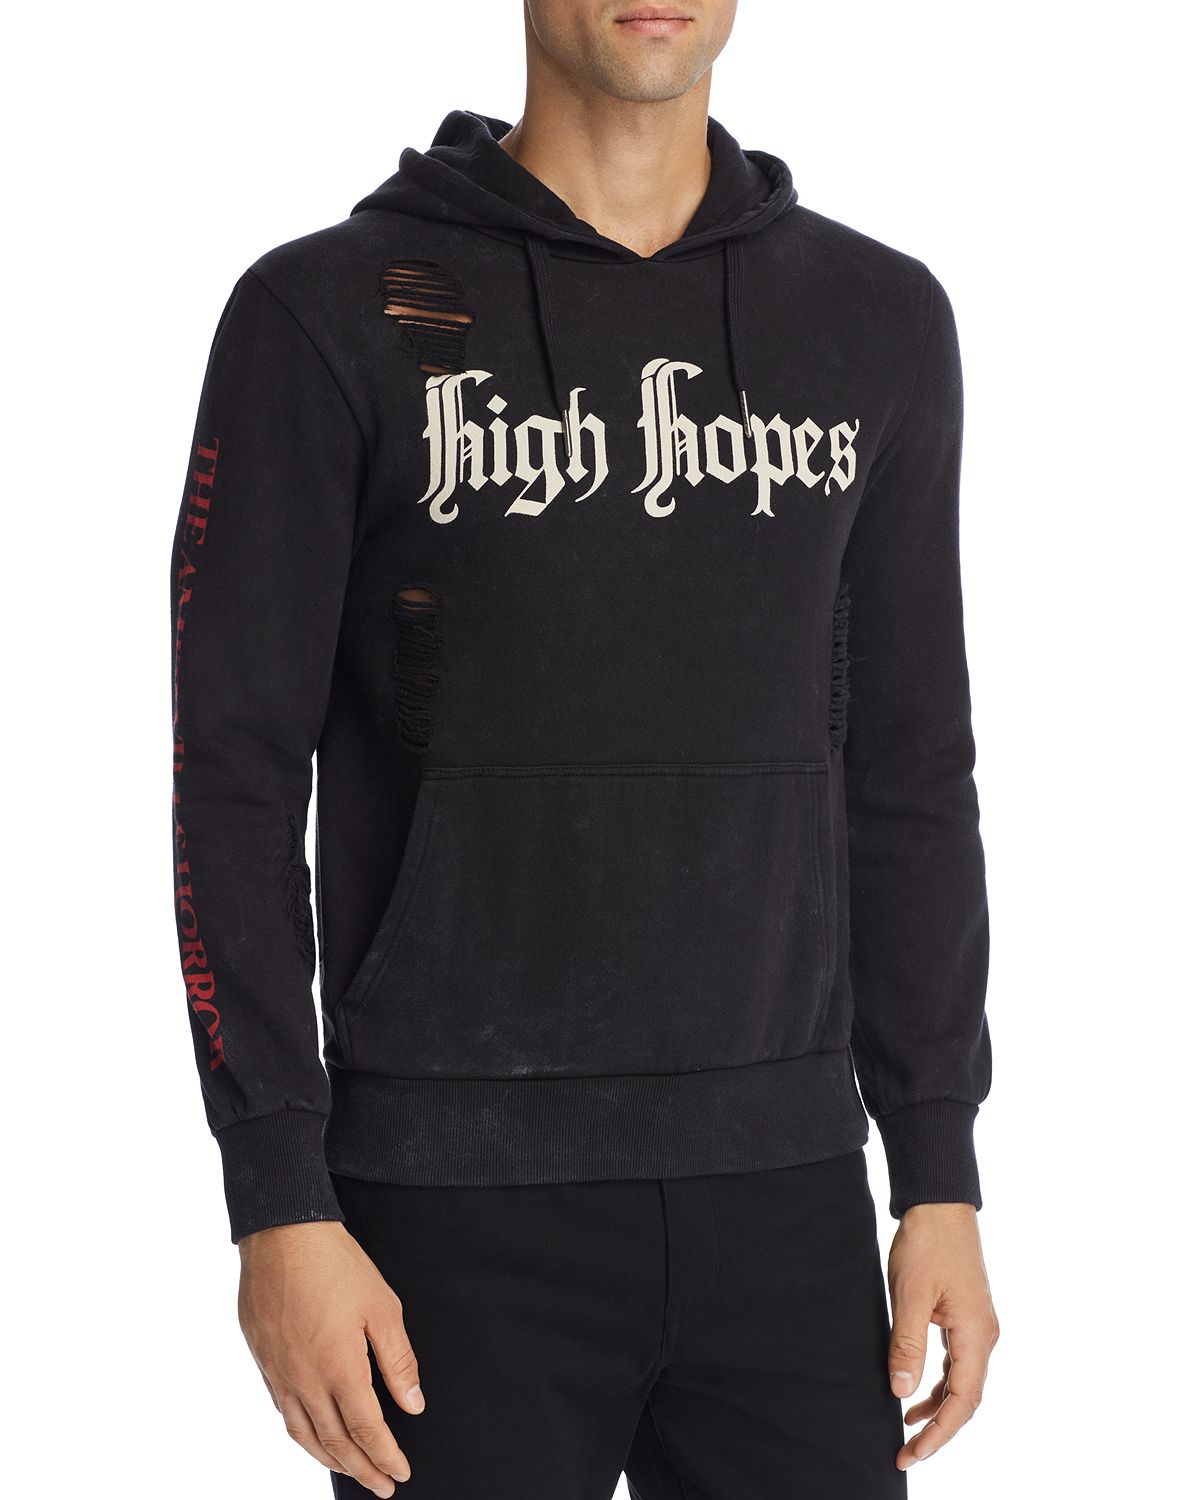 Eleven Paris High Hopes Hooded Sweatshirt